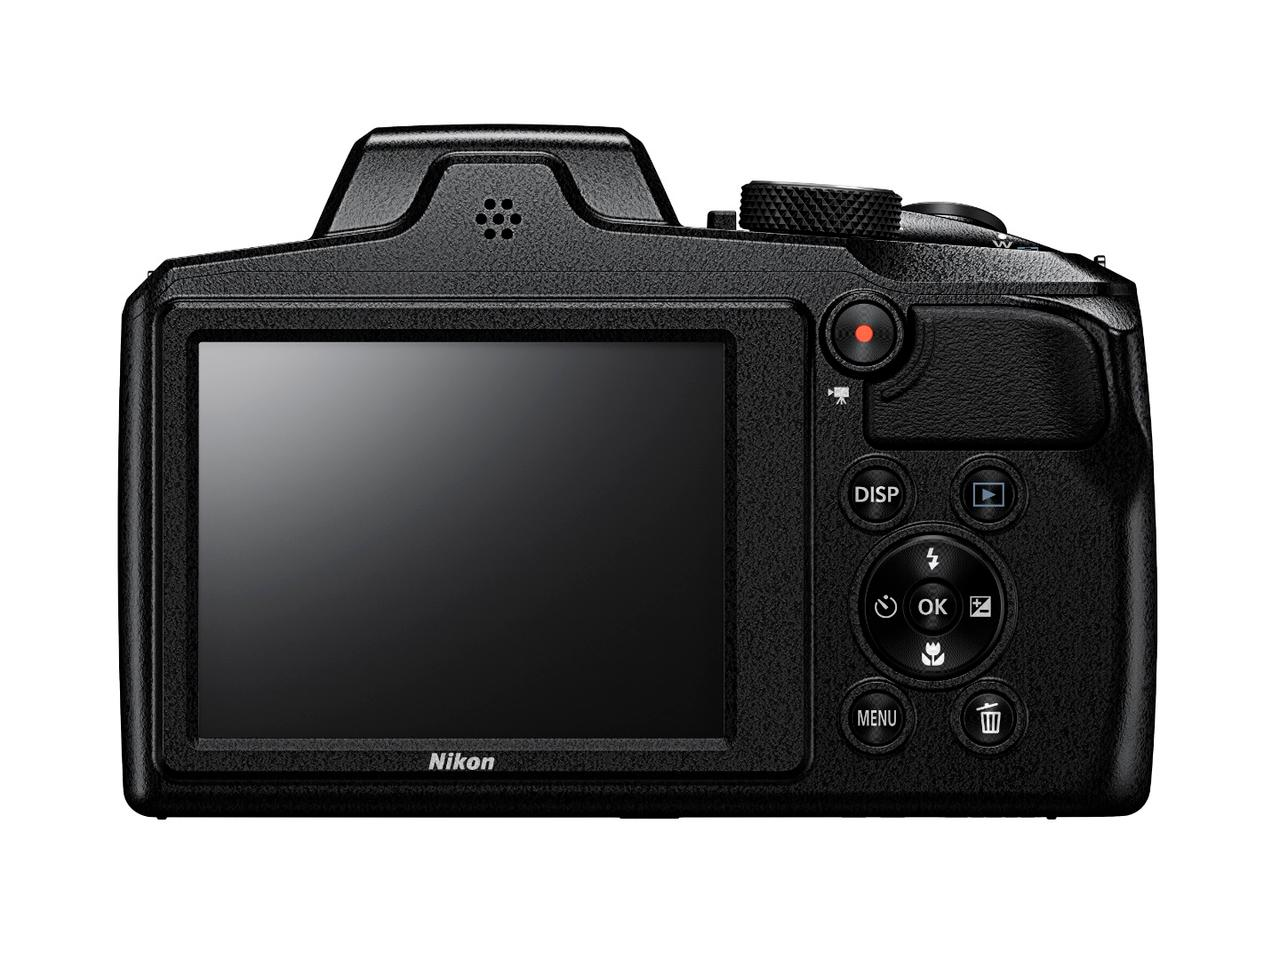 The Coolpix B600 features a 3 inch, 921k dot non-tilting, non-touch display panel